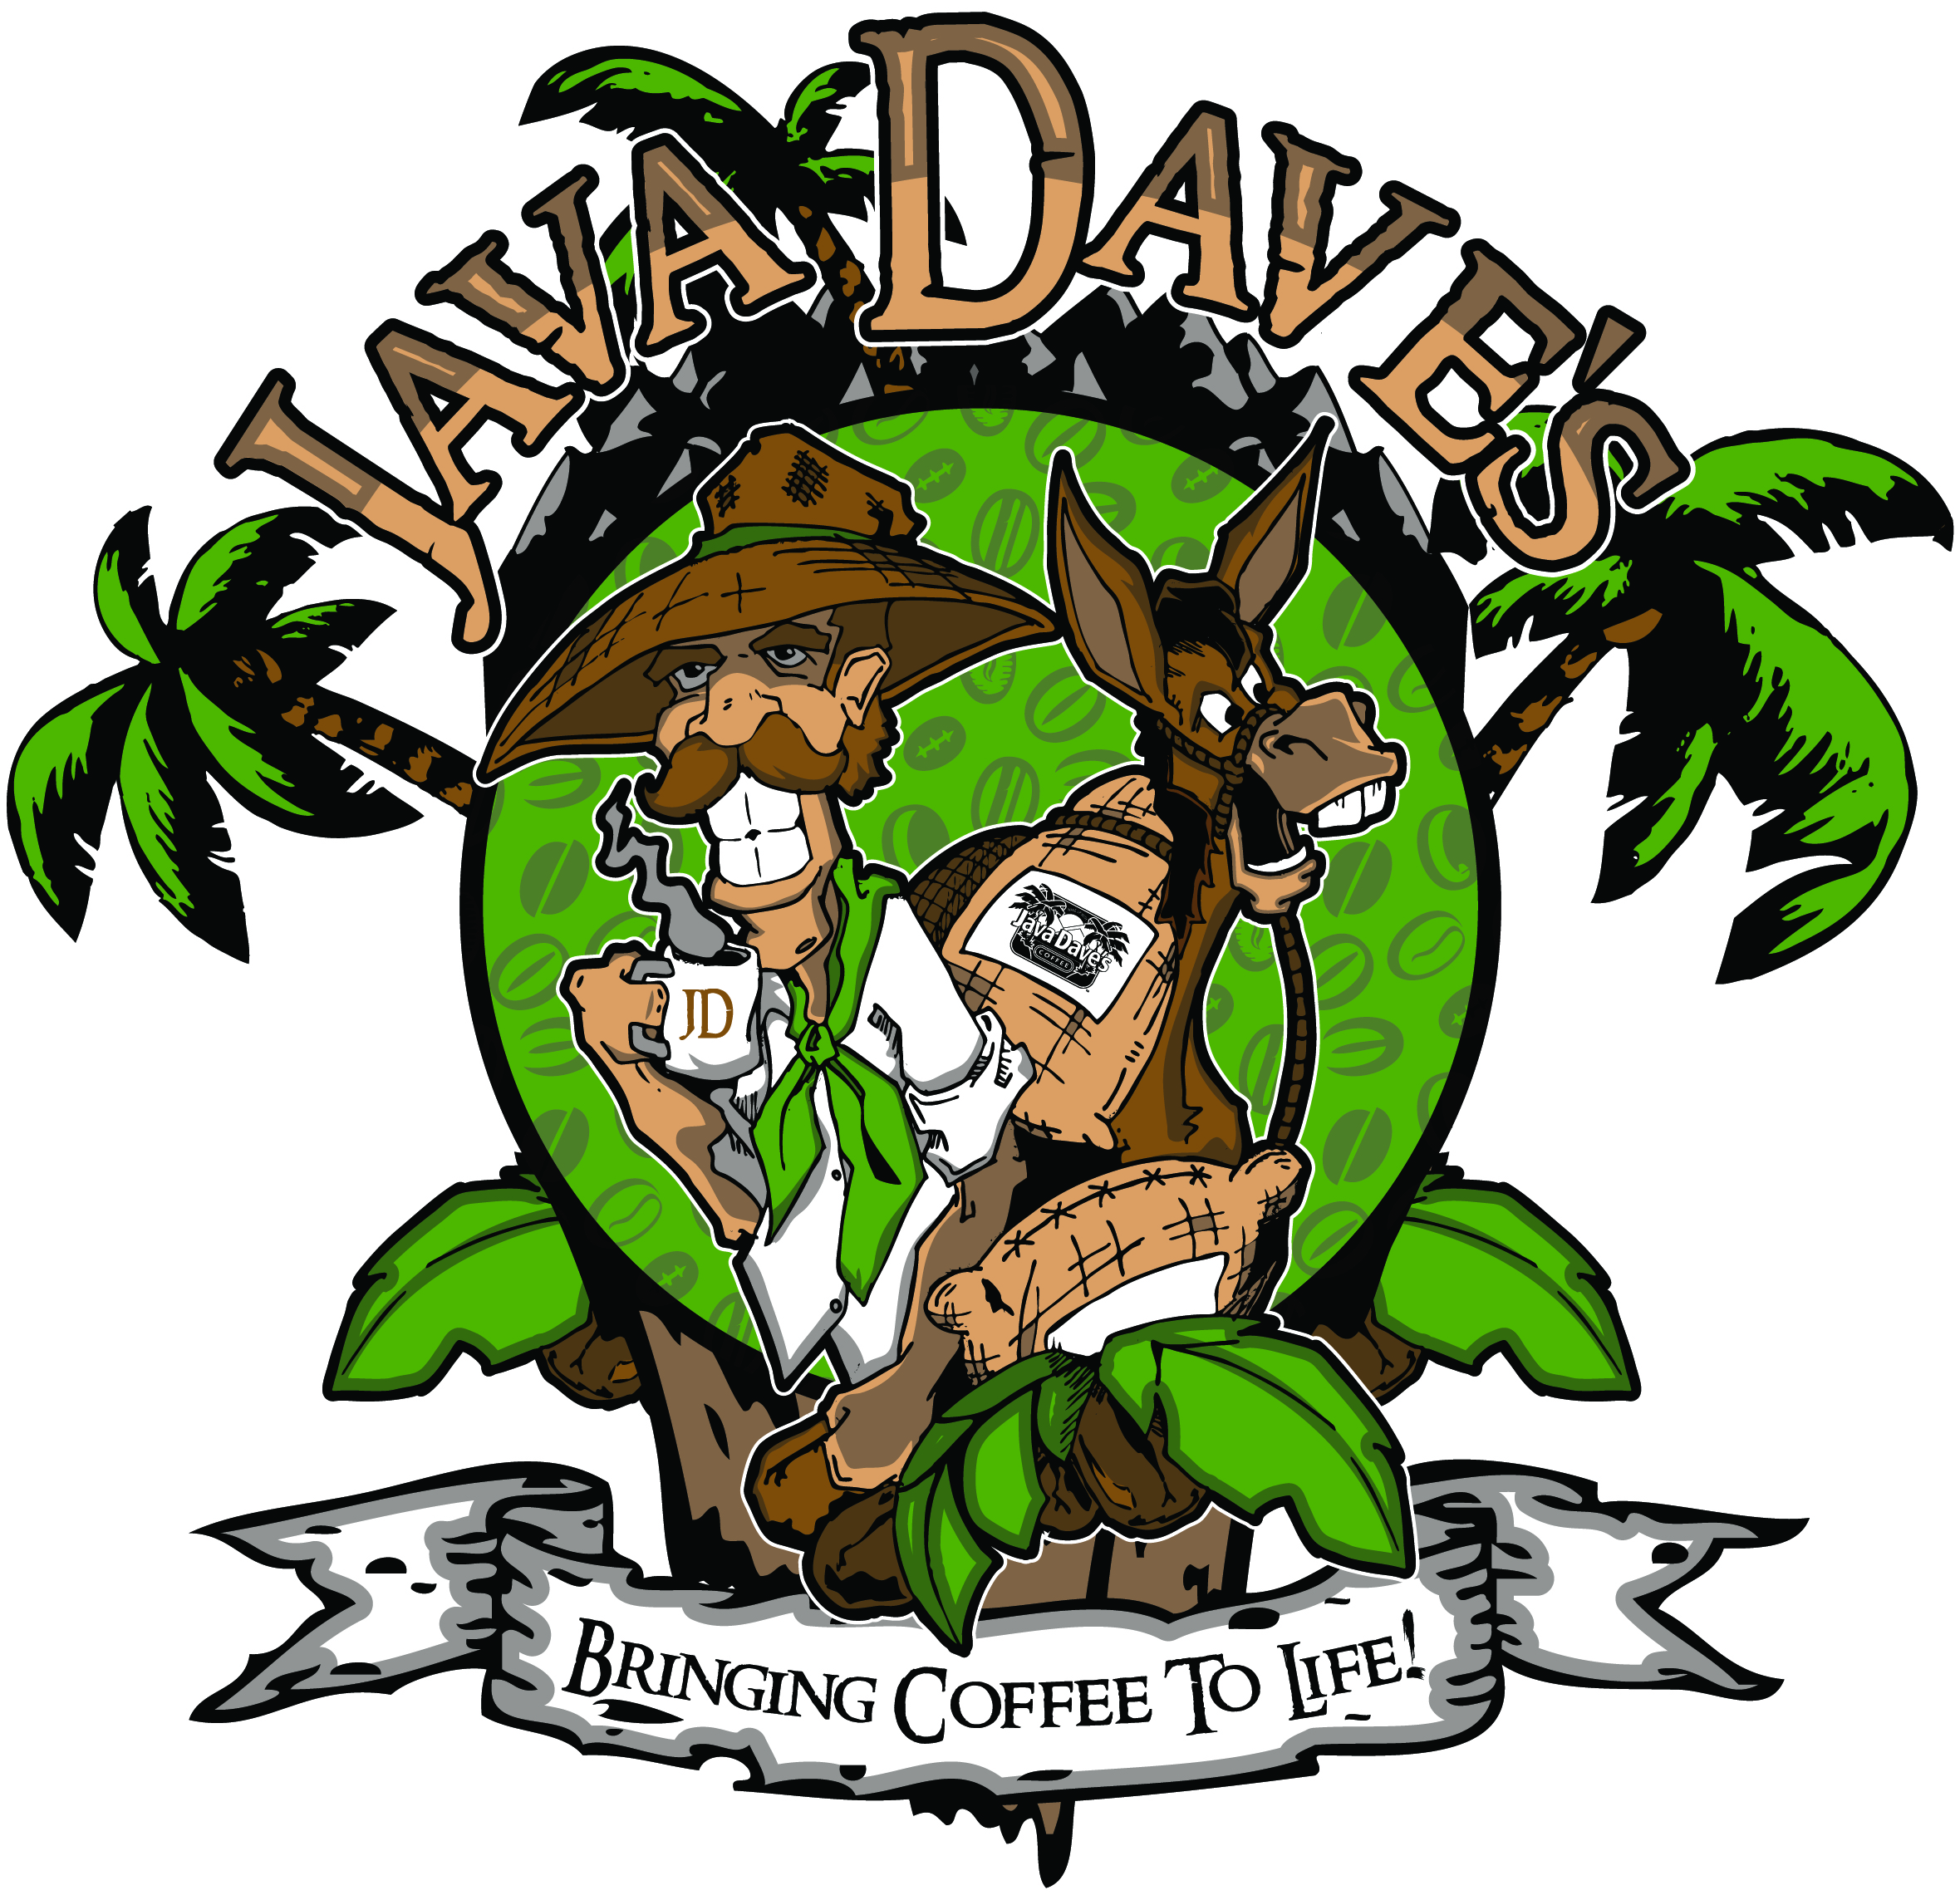 java-daves-mule.jpg